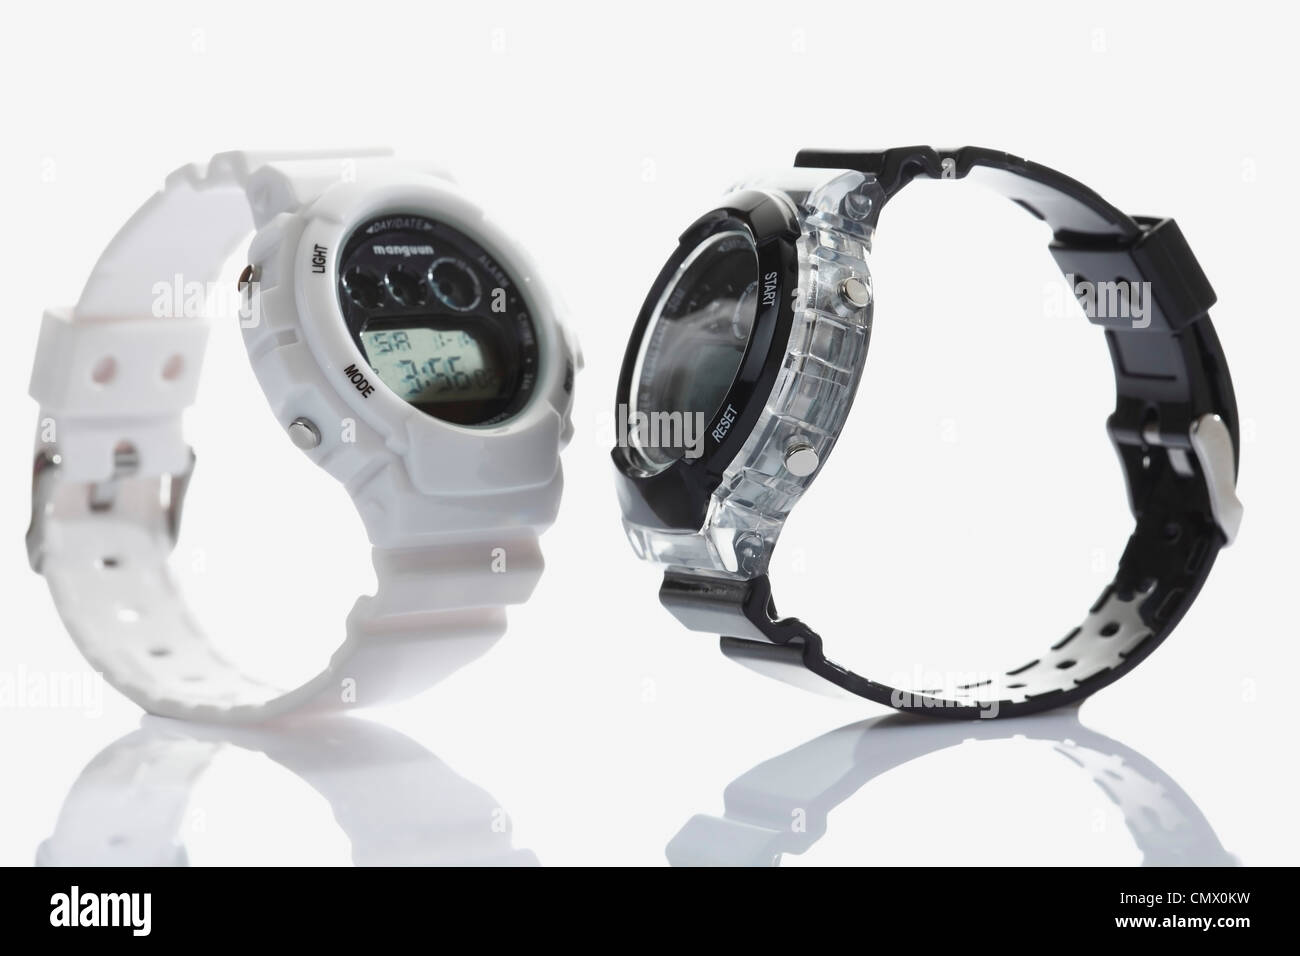 Sporting wrist watches on white background, close up - Stock Image